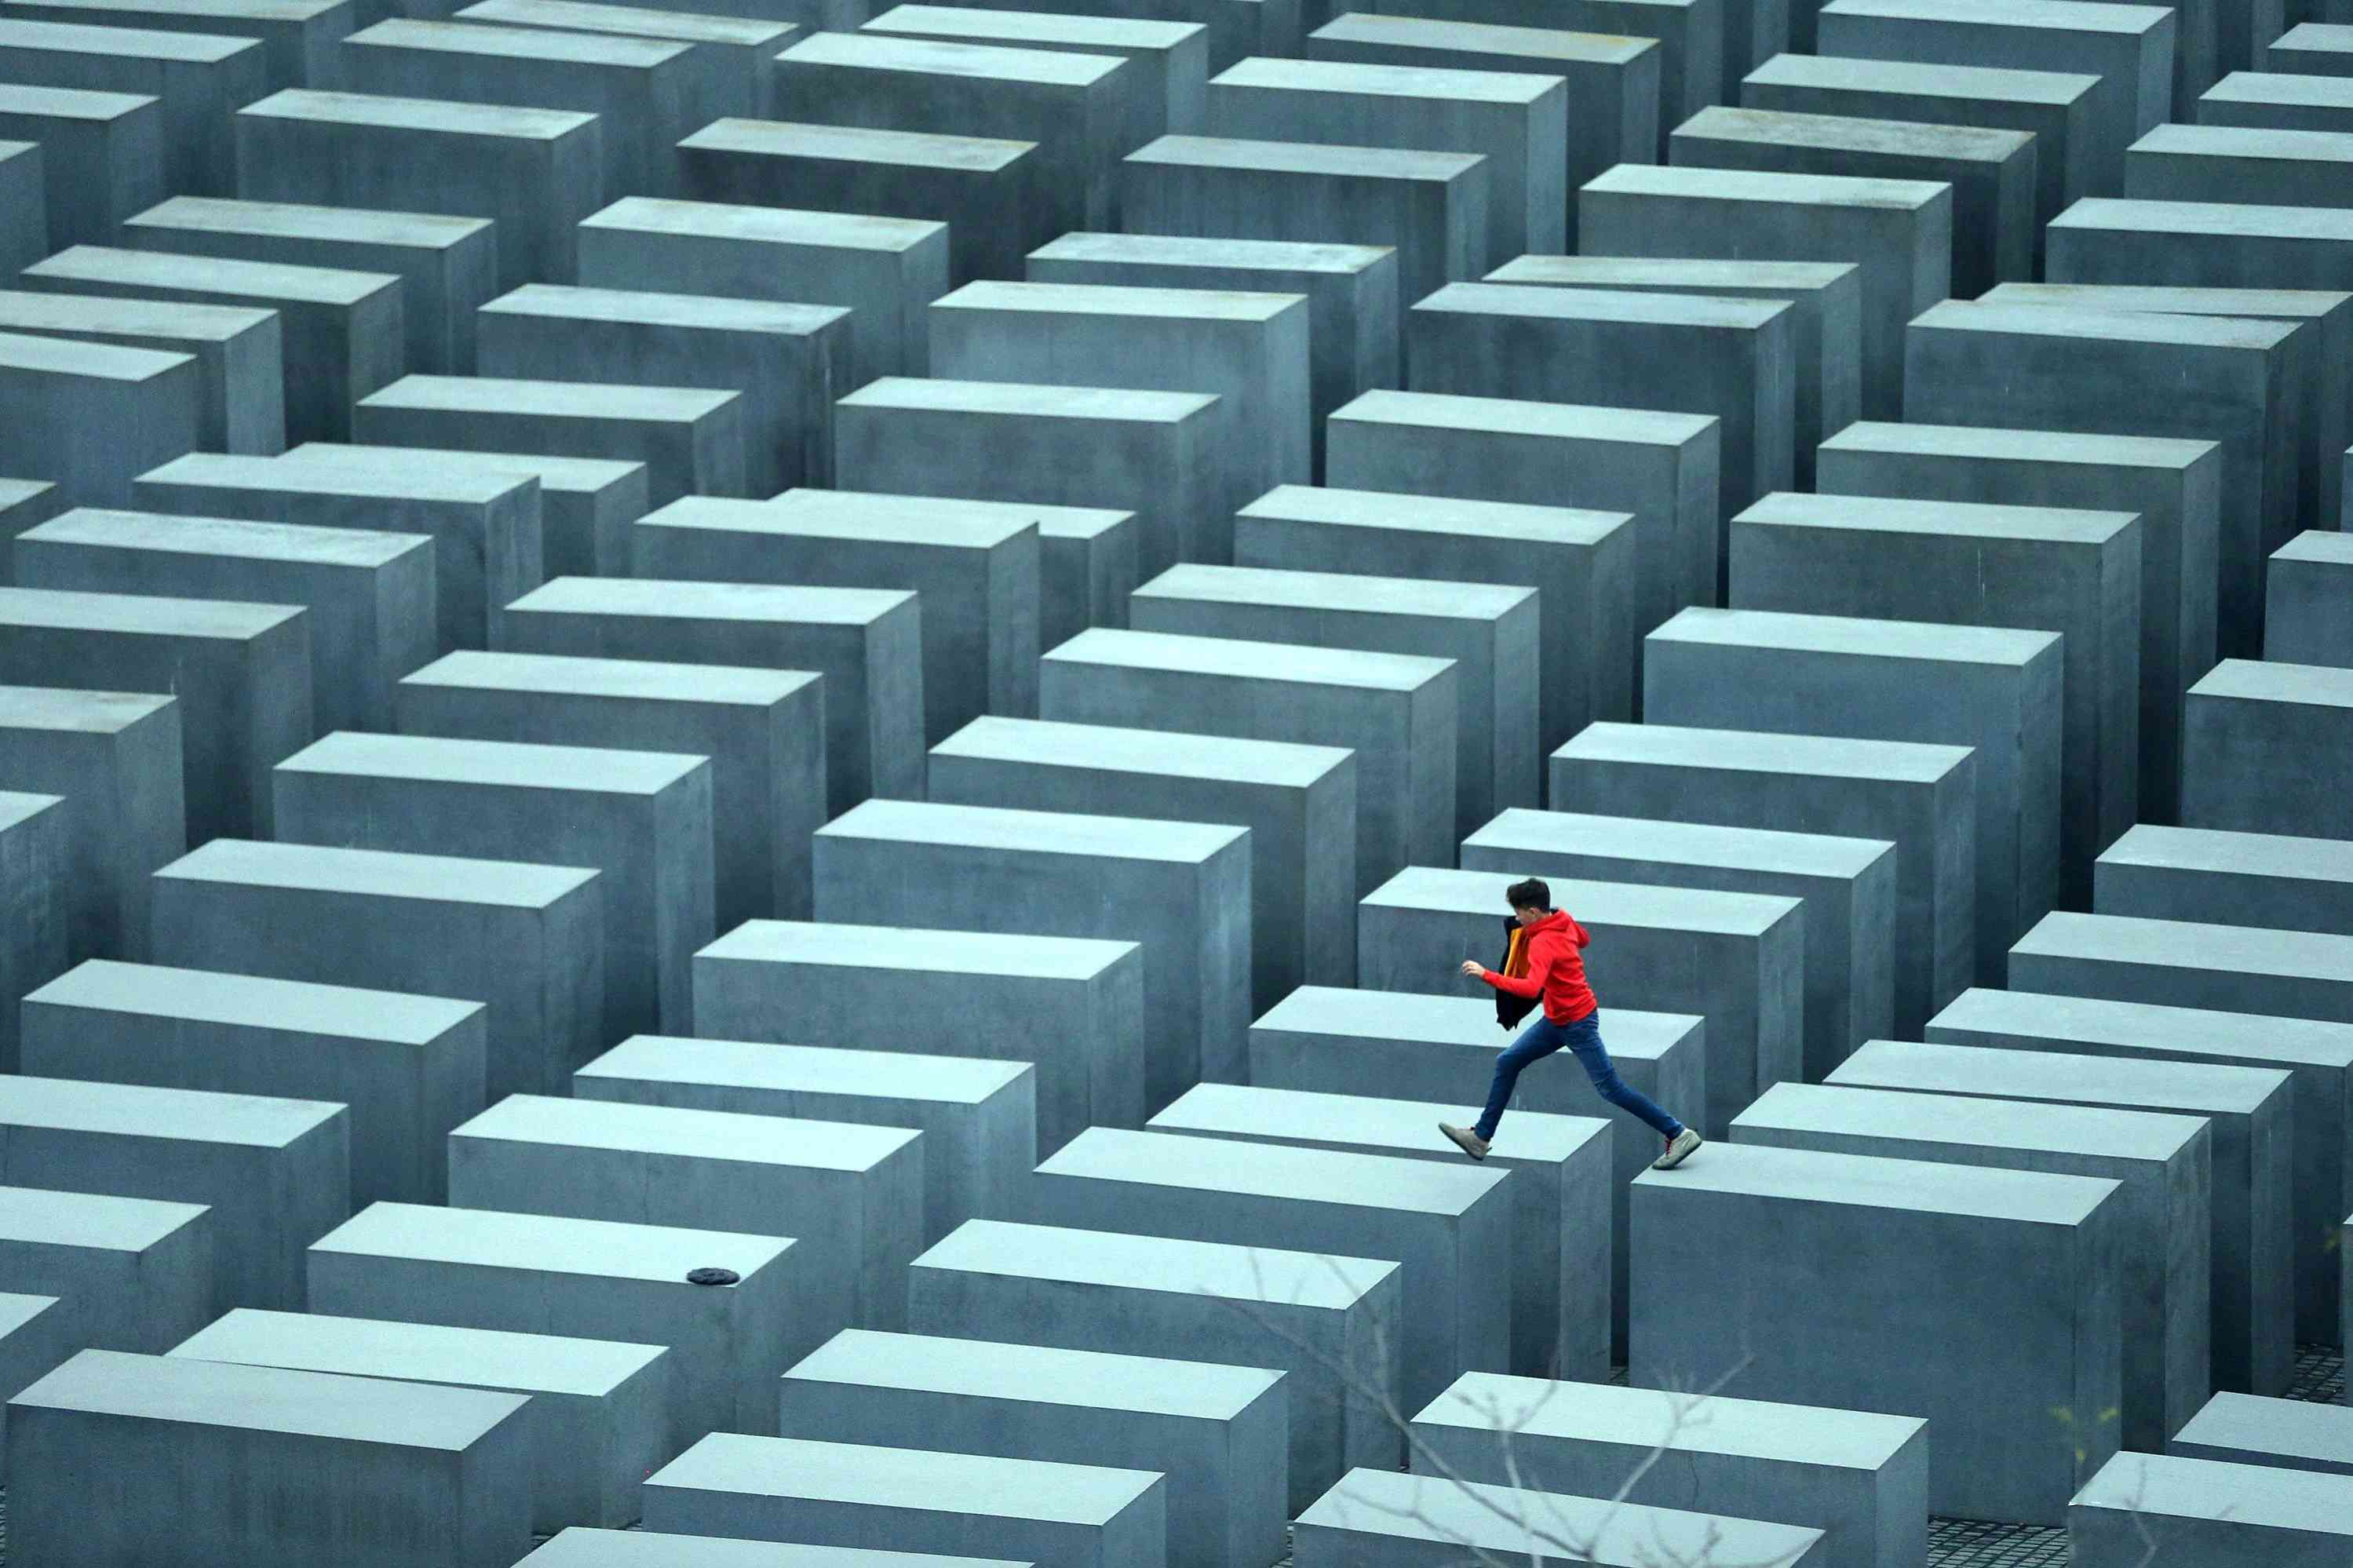 A boy in a red jacket hops from one to another of the 2,711 stellae, concrete tombs that together make a Memorial to the Murdered Jews of Europe